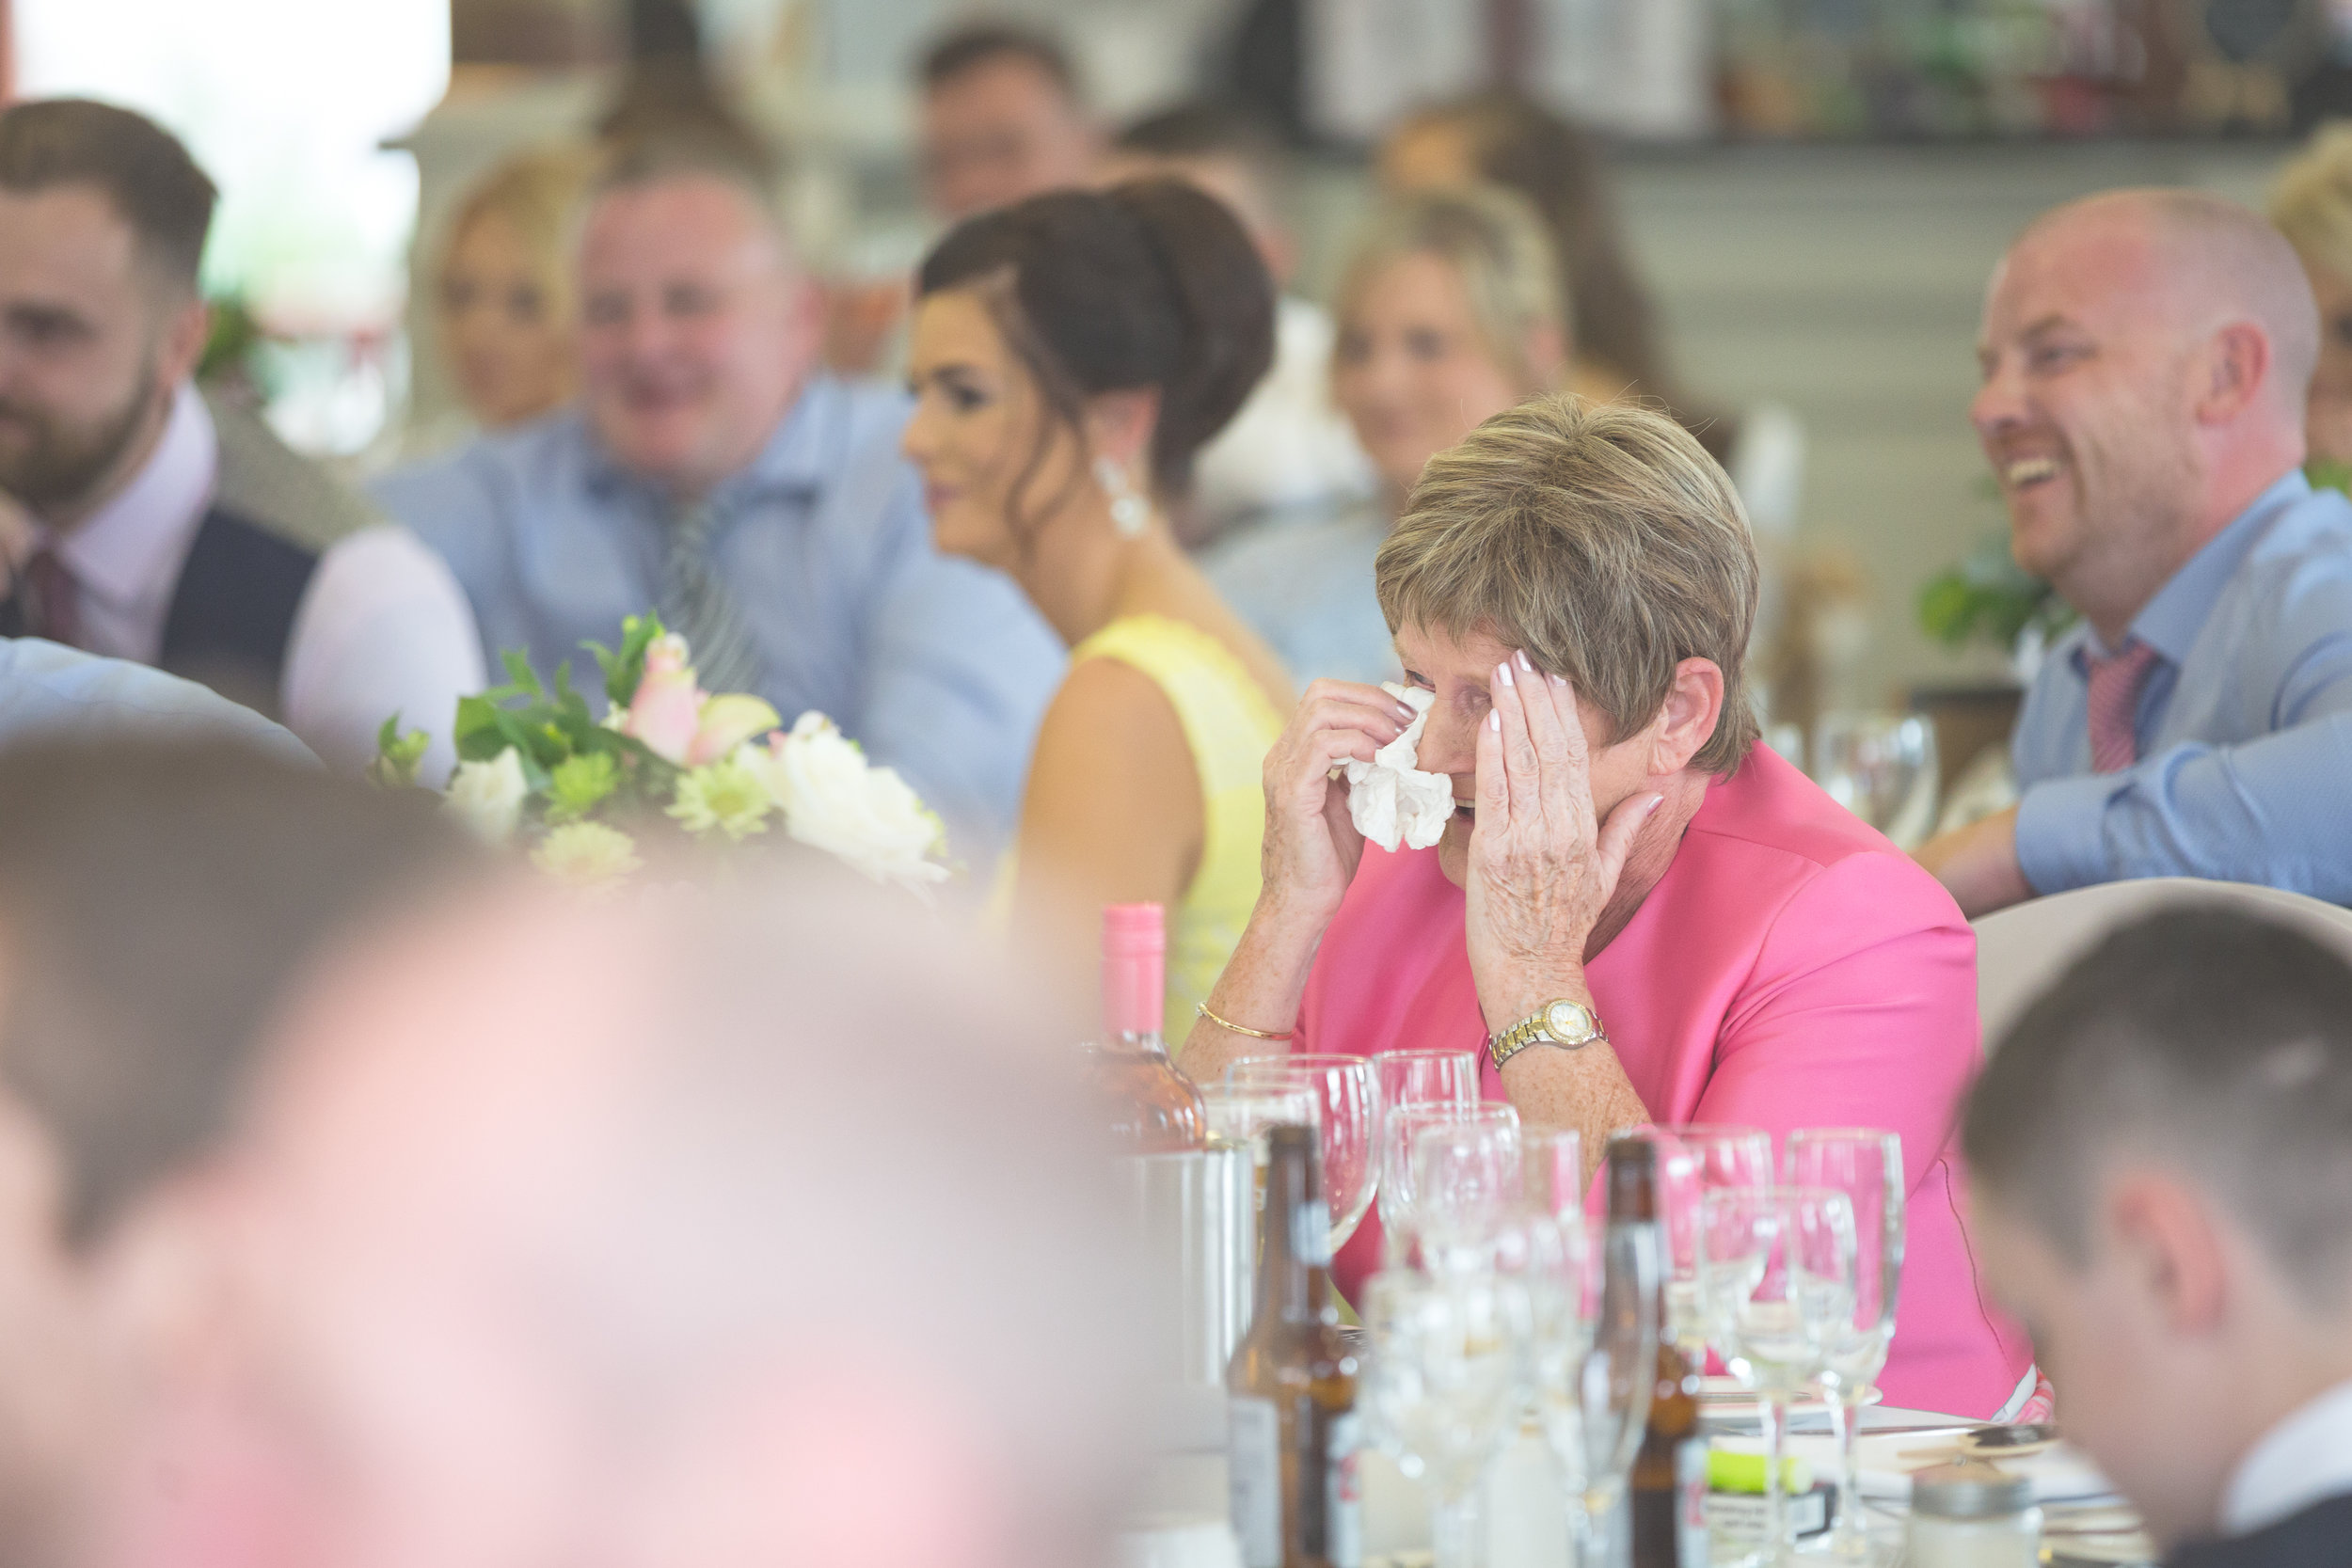 Antoinette & Stephen - Speeches | Brian McEwan Photography | Wedding Photographer Northern Ireland 66.jpg